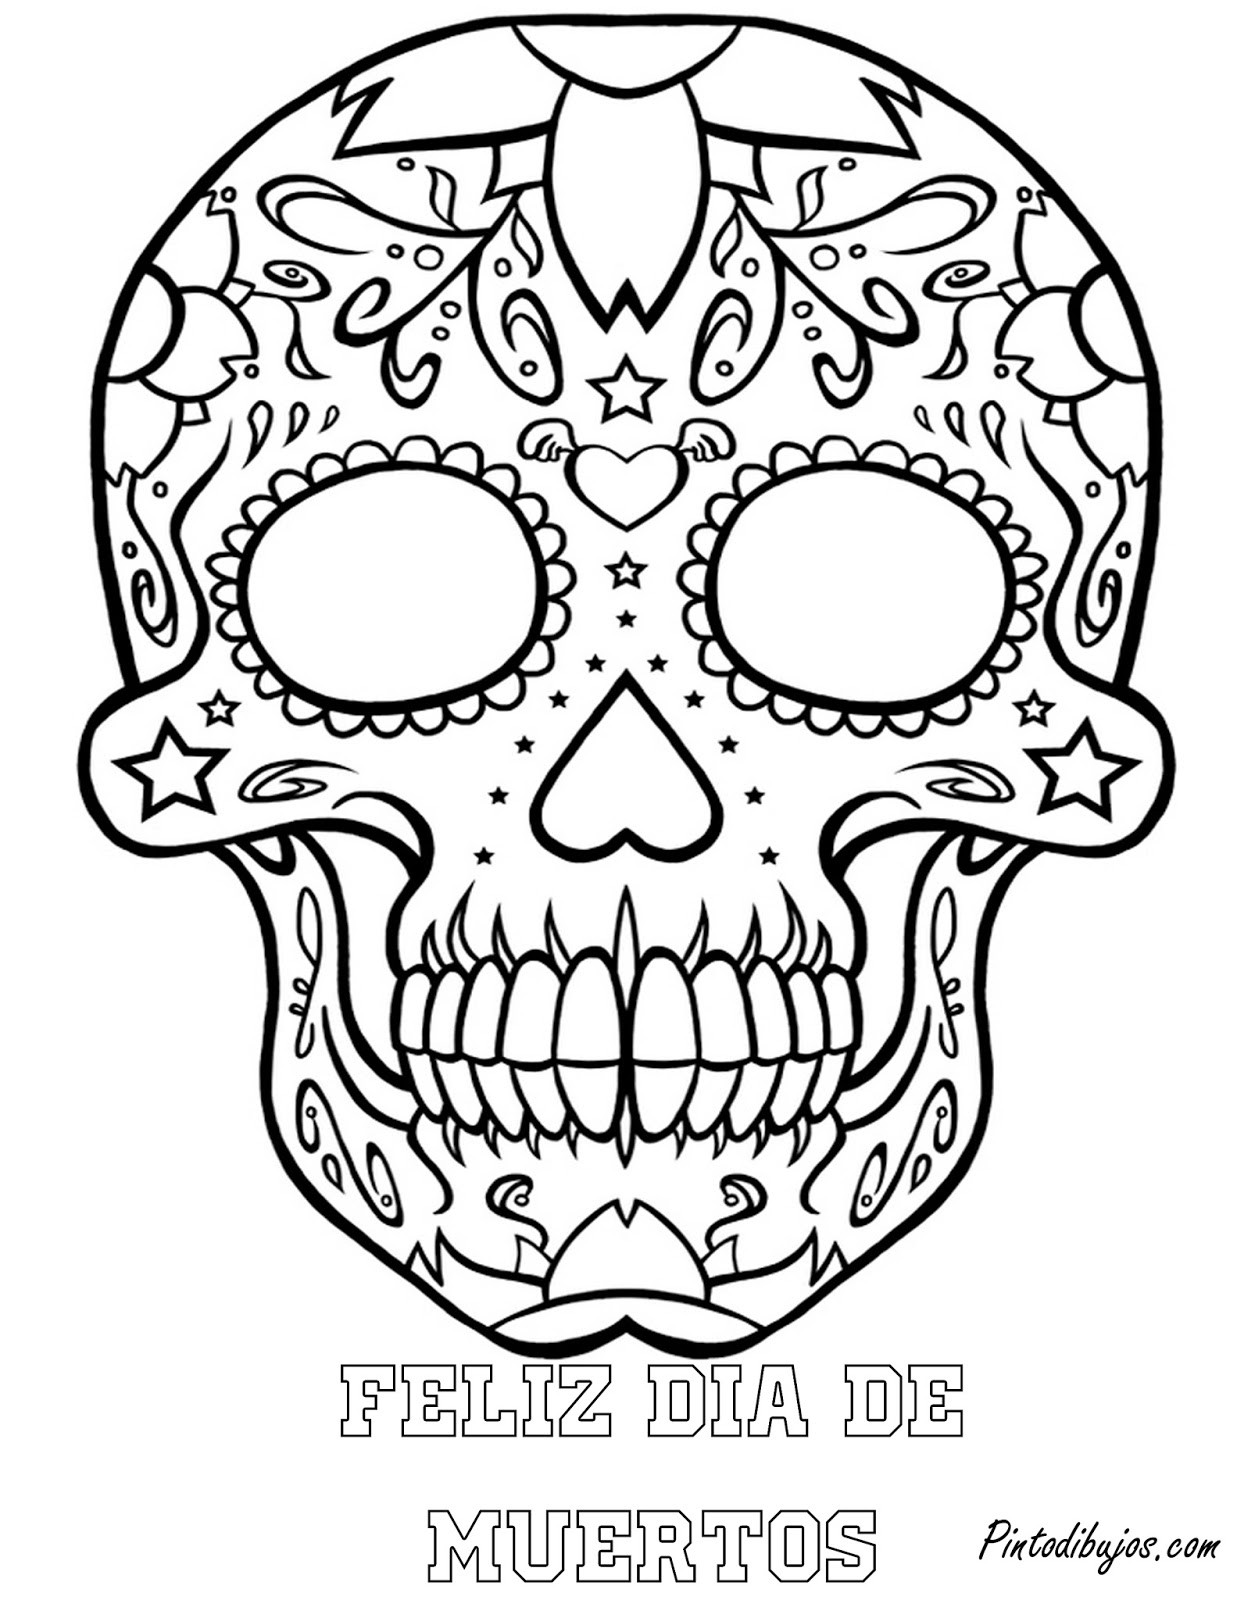 1237x1600 Dia Los Muertos Coloring Pages With Wallpaper Desktop Background